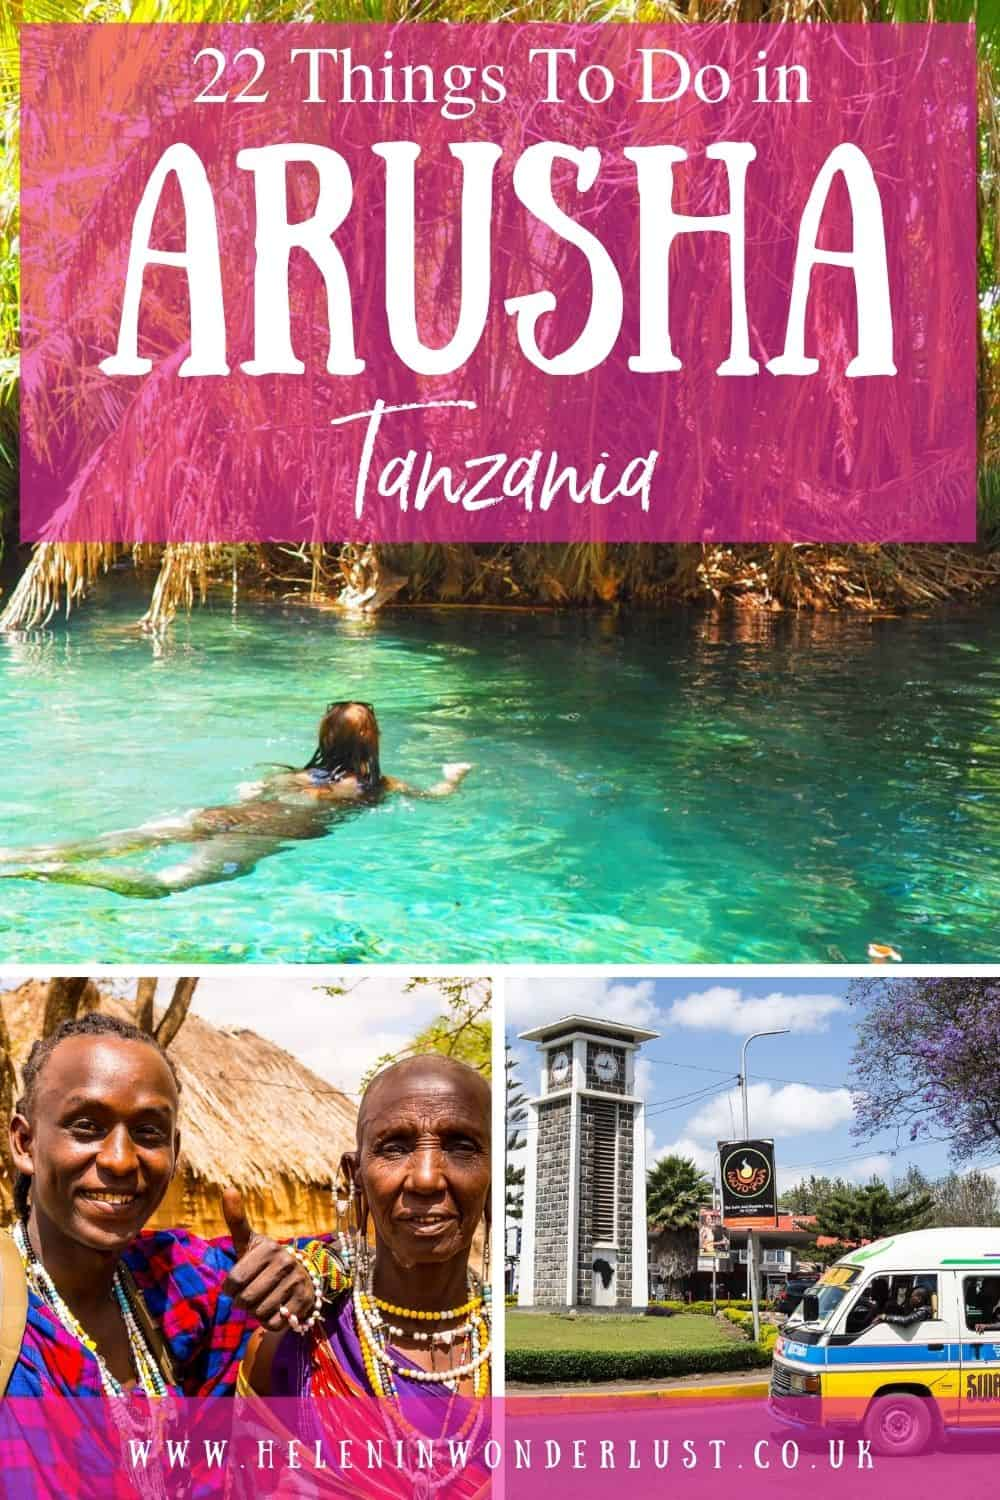 Looking for ideas on things to do in Arusha? Here are my favourite things to do in this great city in Northern Tanzania!